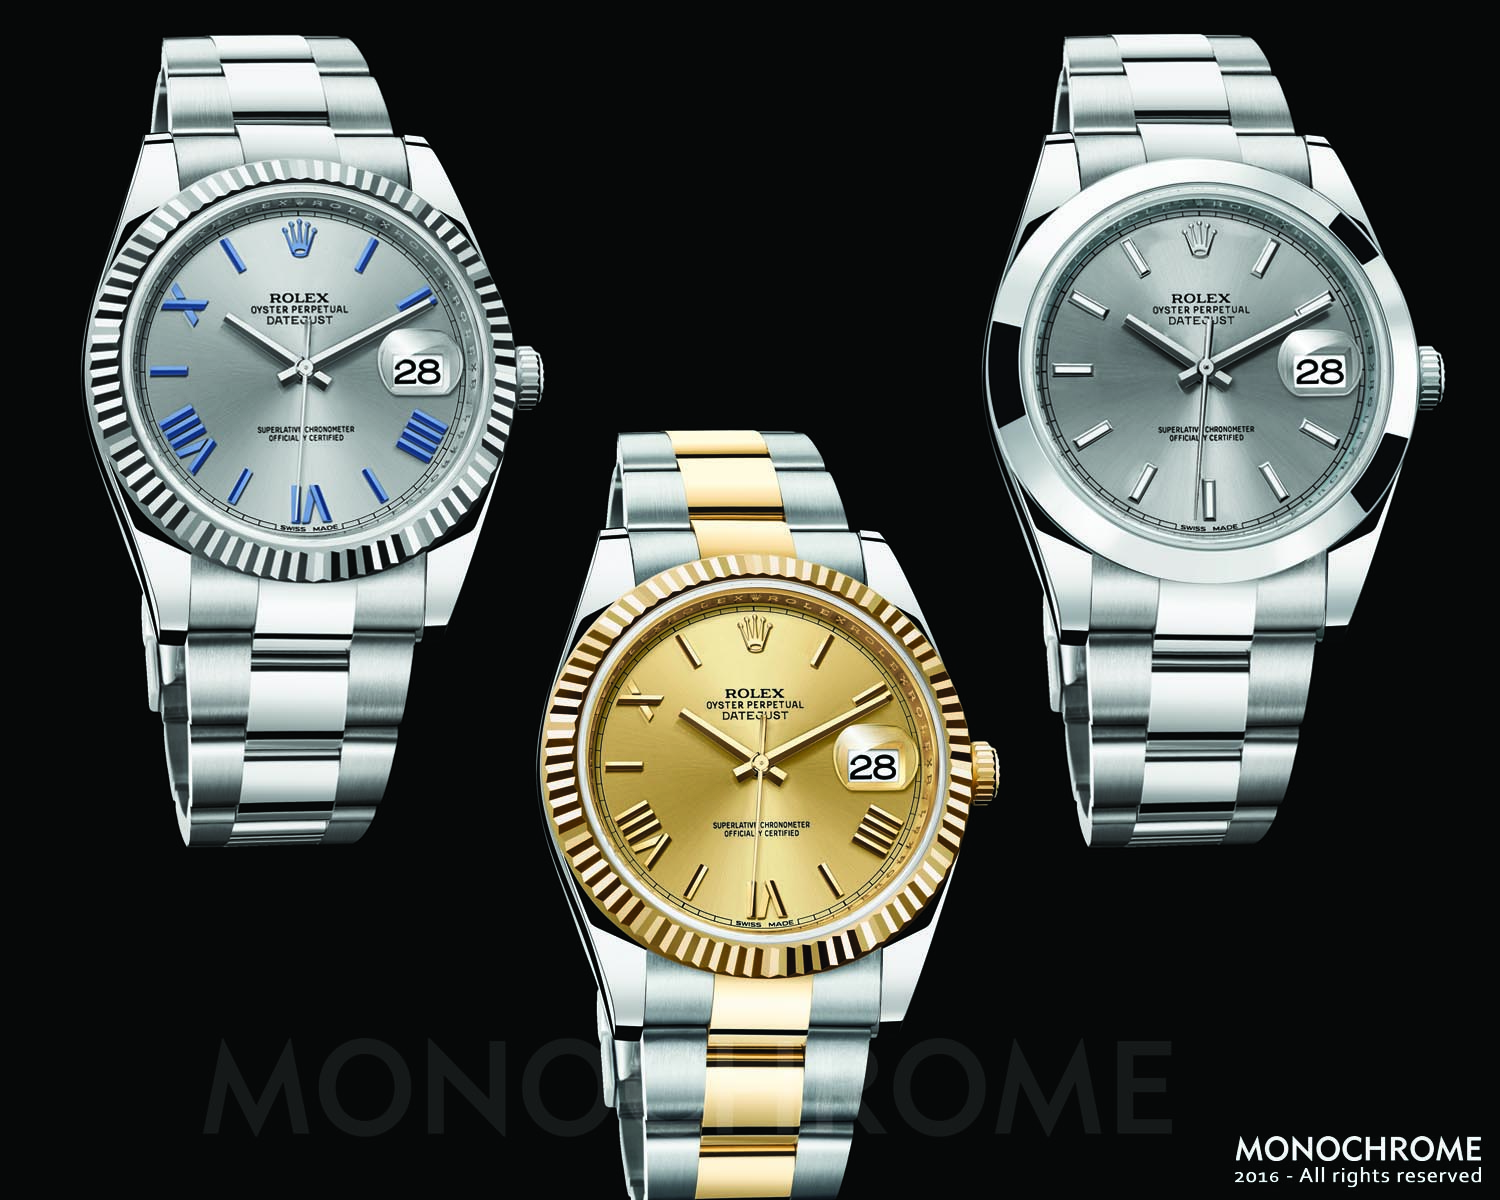 Rolex DateJust 40 Collection 2016 - Rolex Baselworld 2016 - Rolex Predictions 2016 - Monochrome